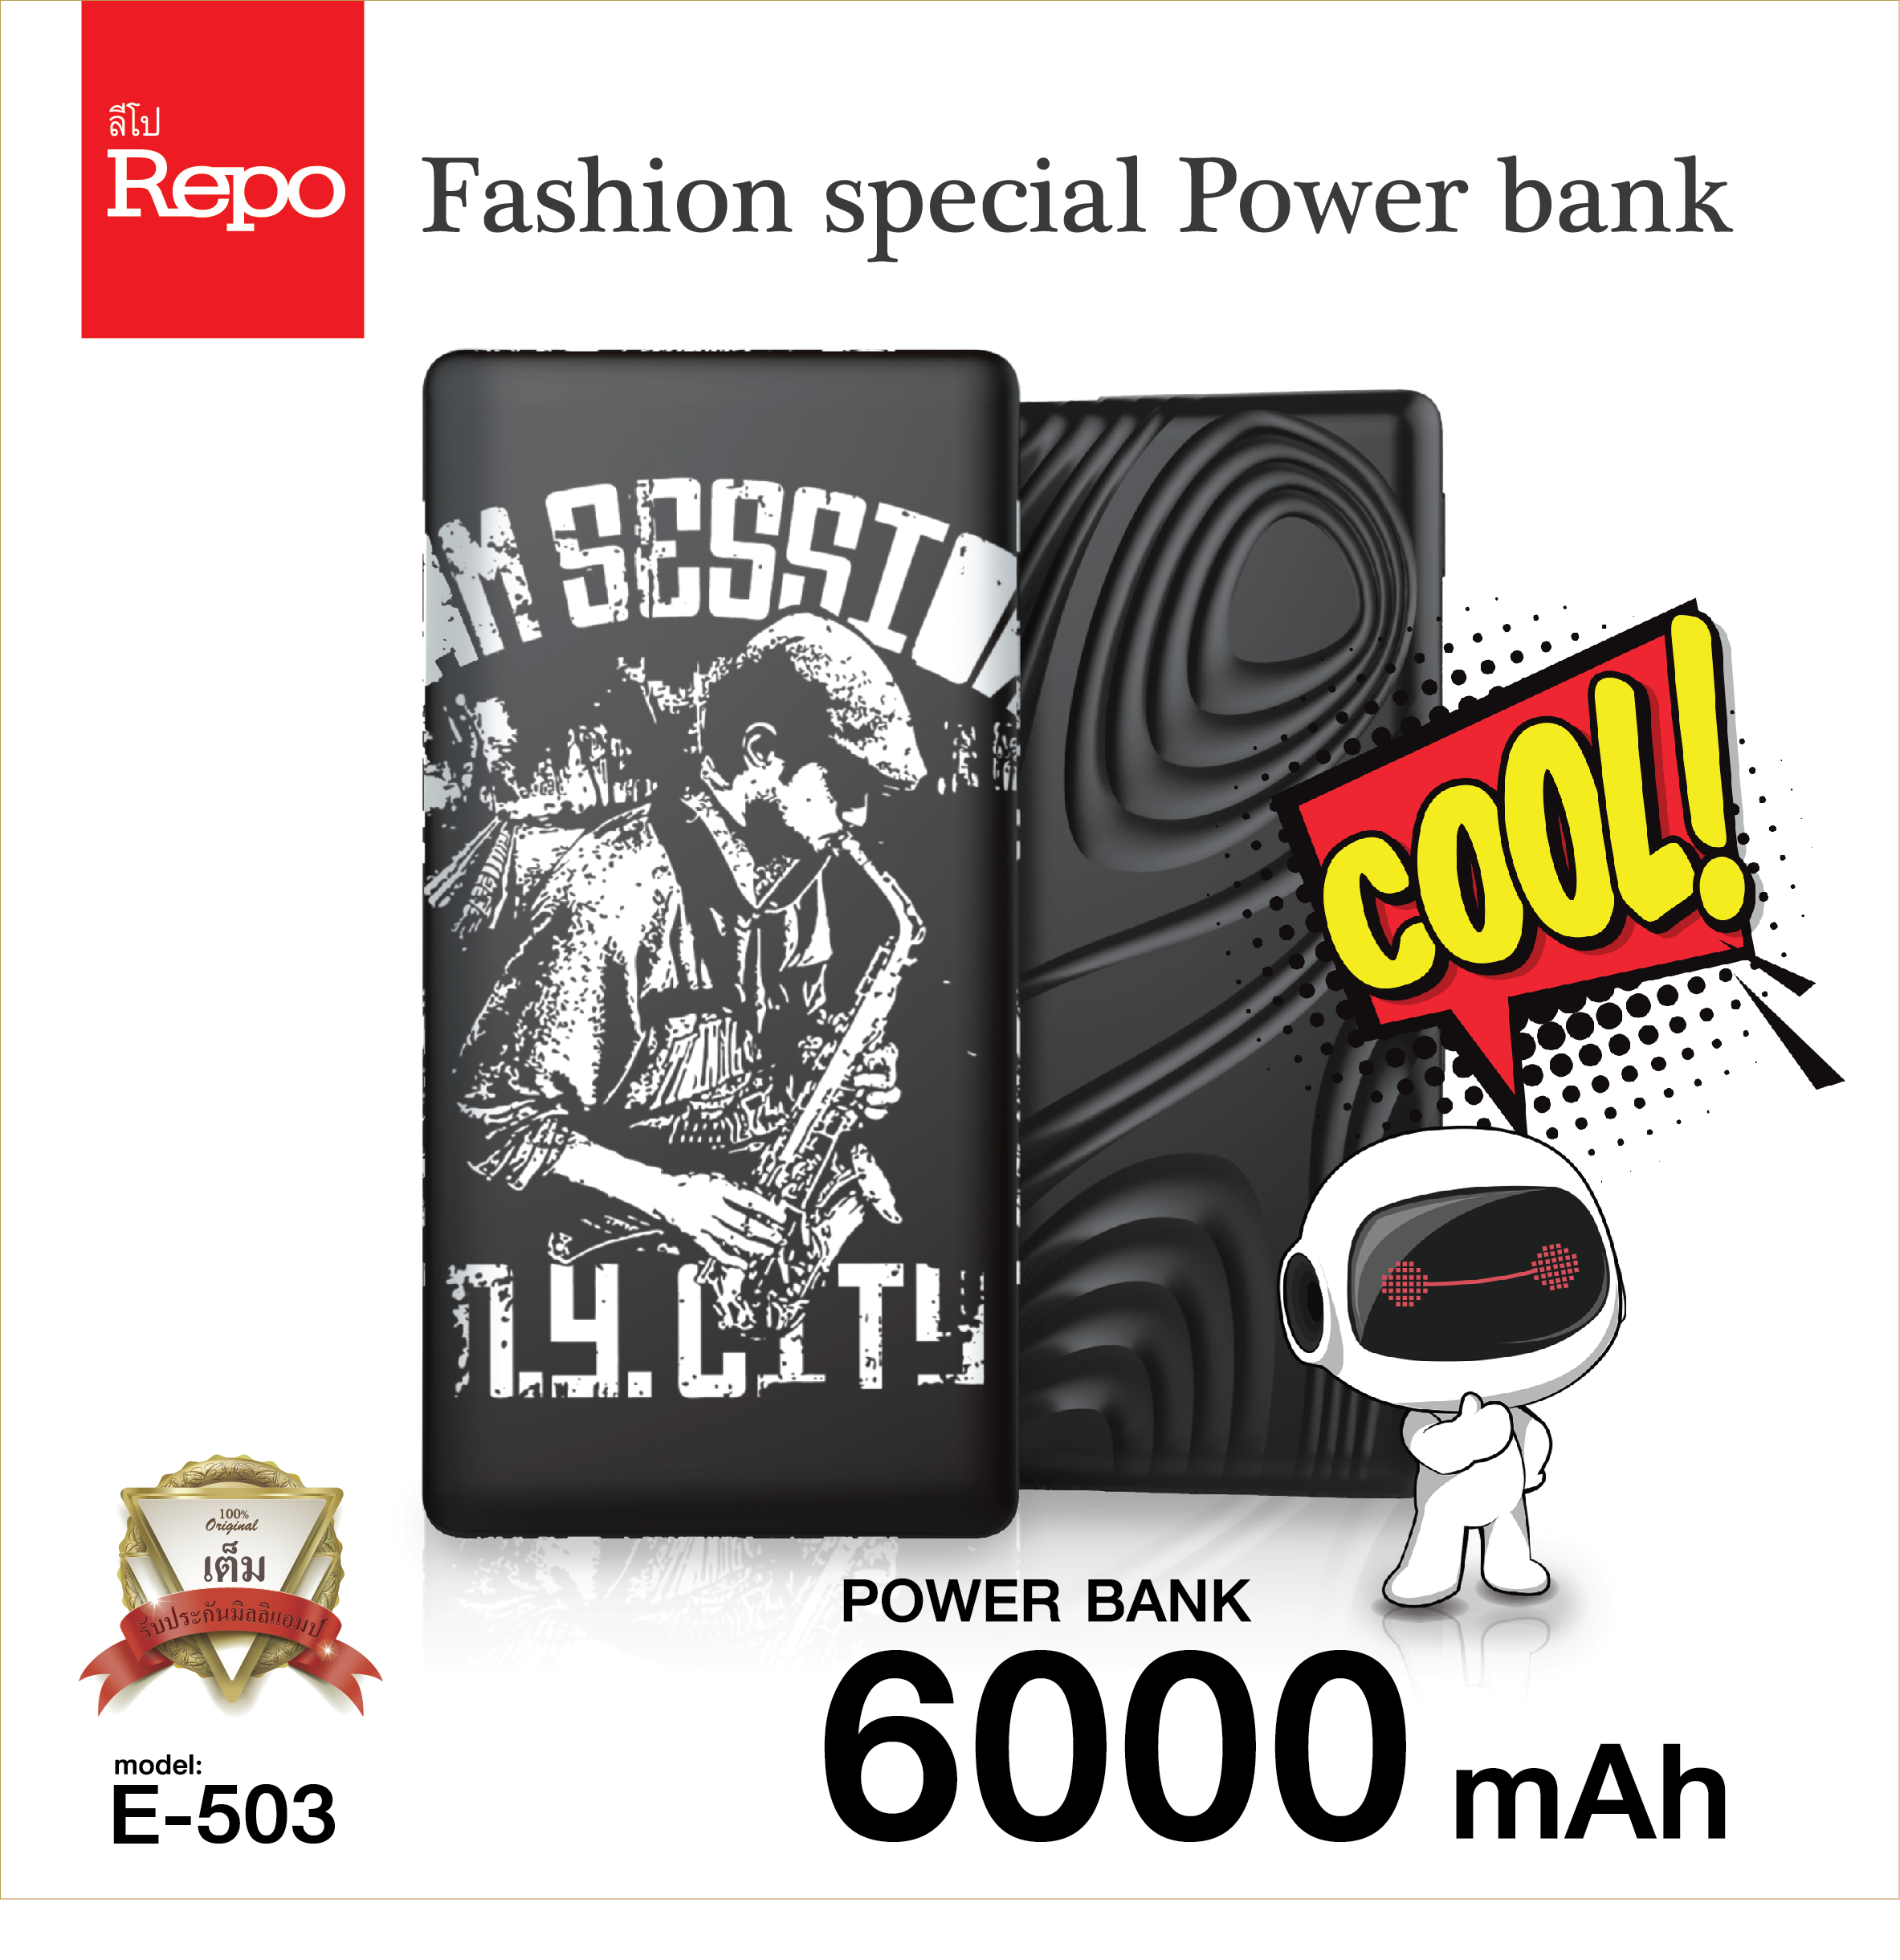 Power Bank 6000mAh Repo E-503